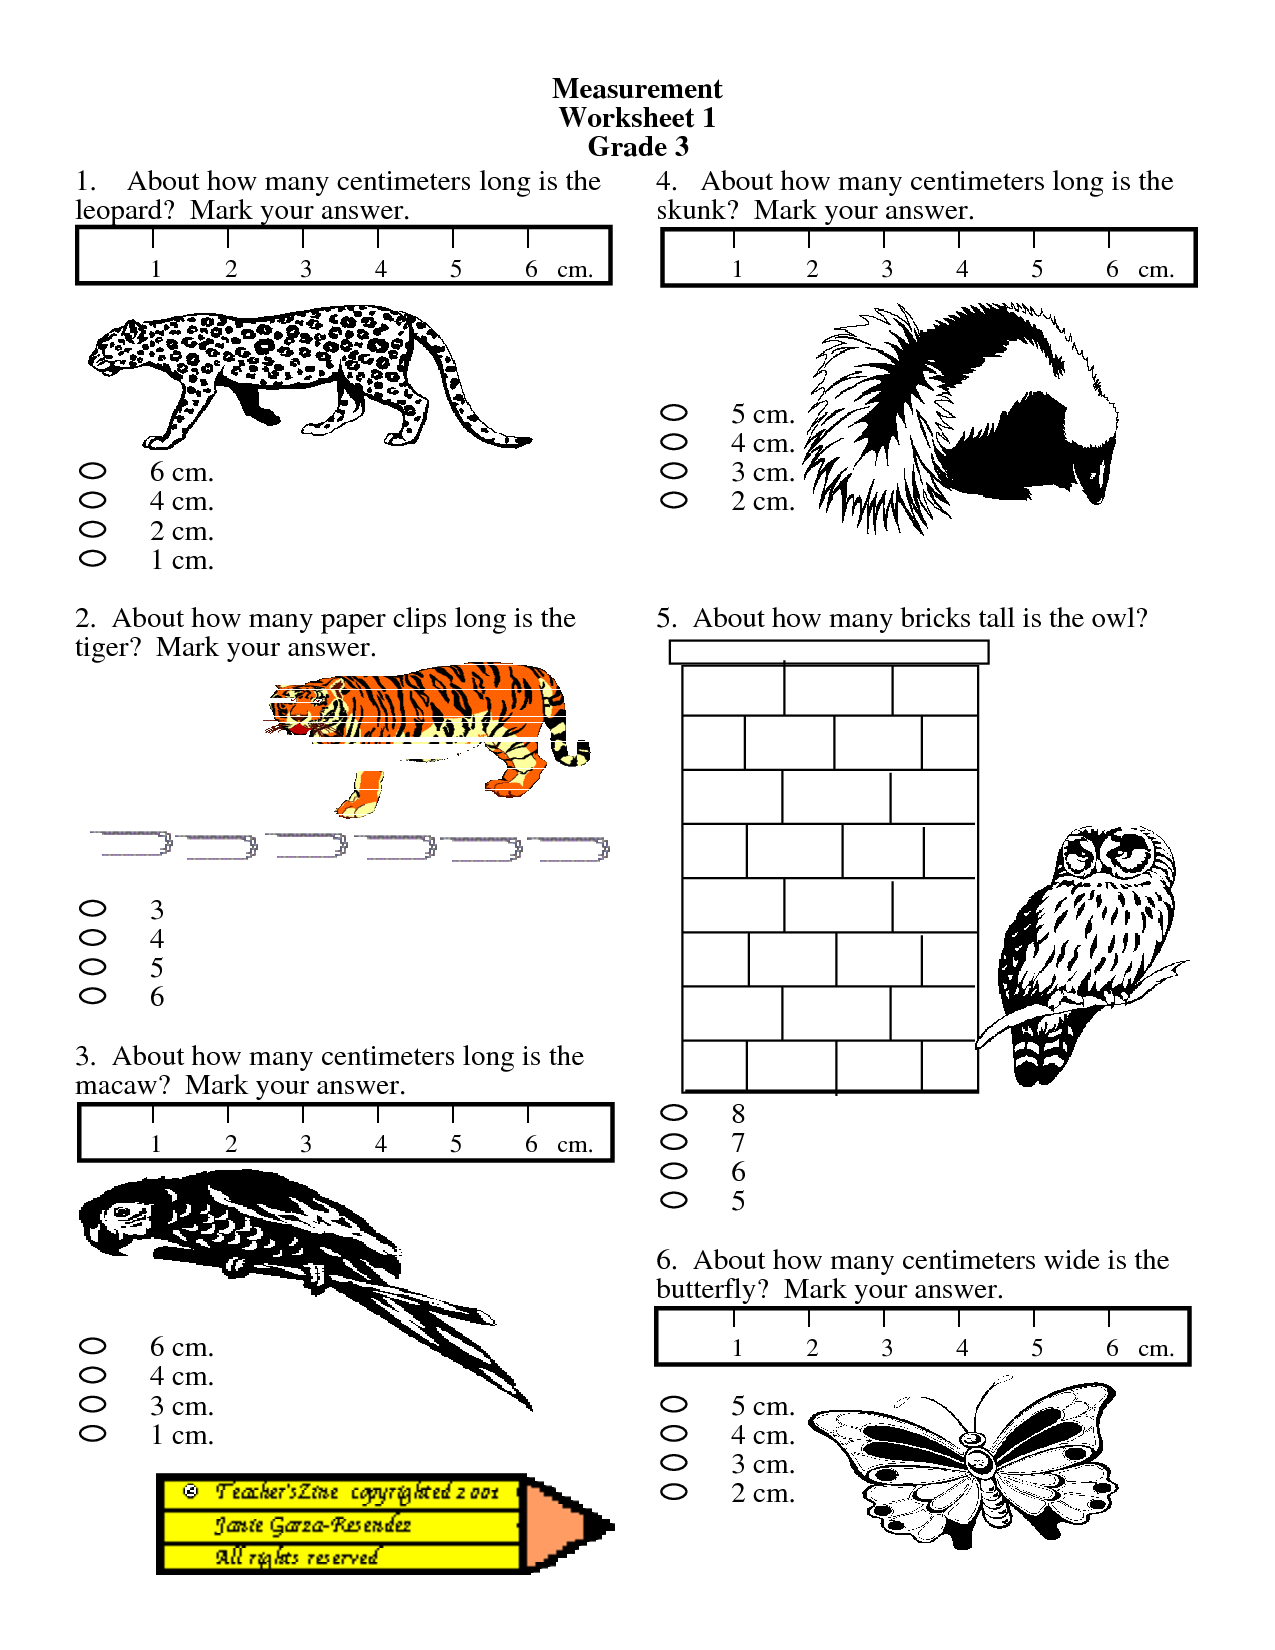 Measurement Worksheets Grade 2 Coloringkidsco – Maths Grade 3 Free Worksheets